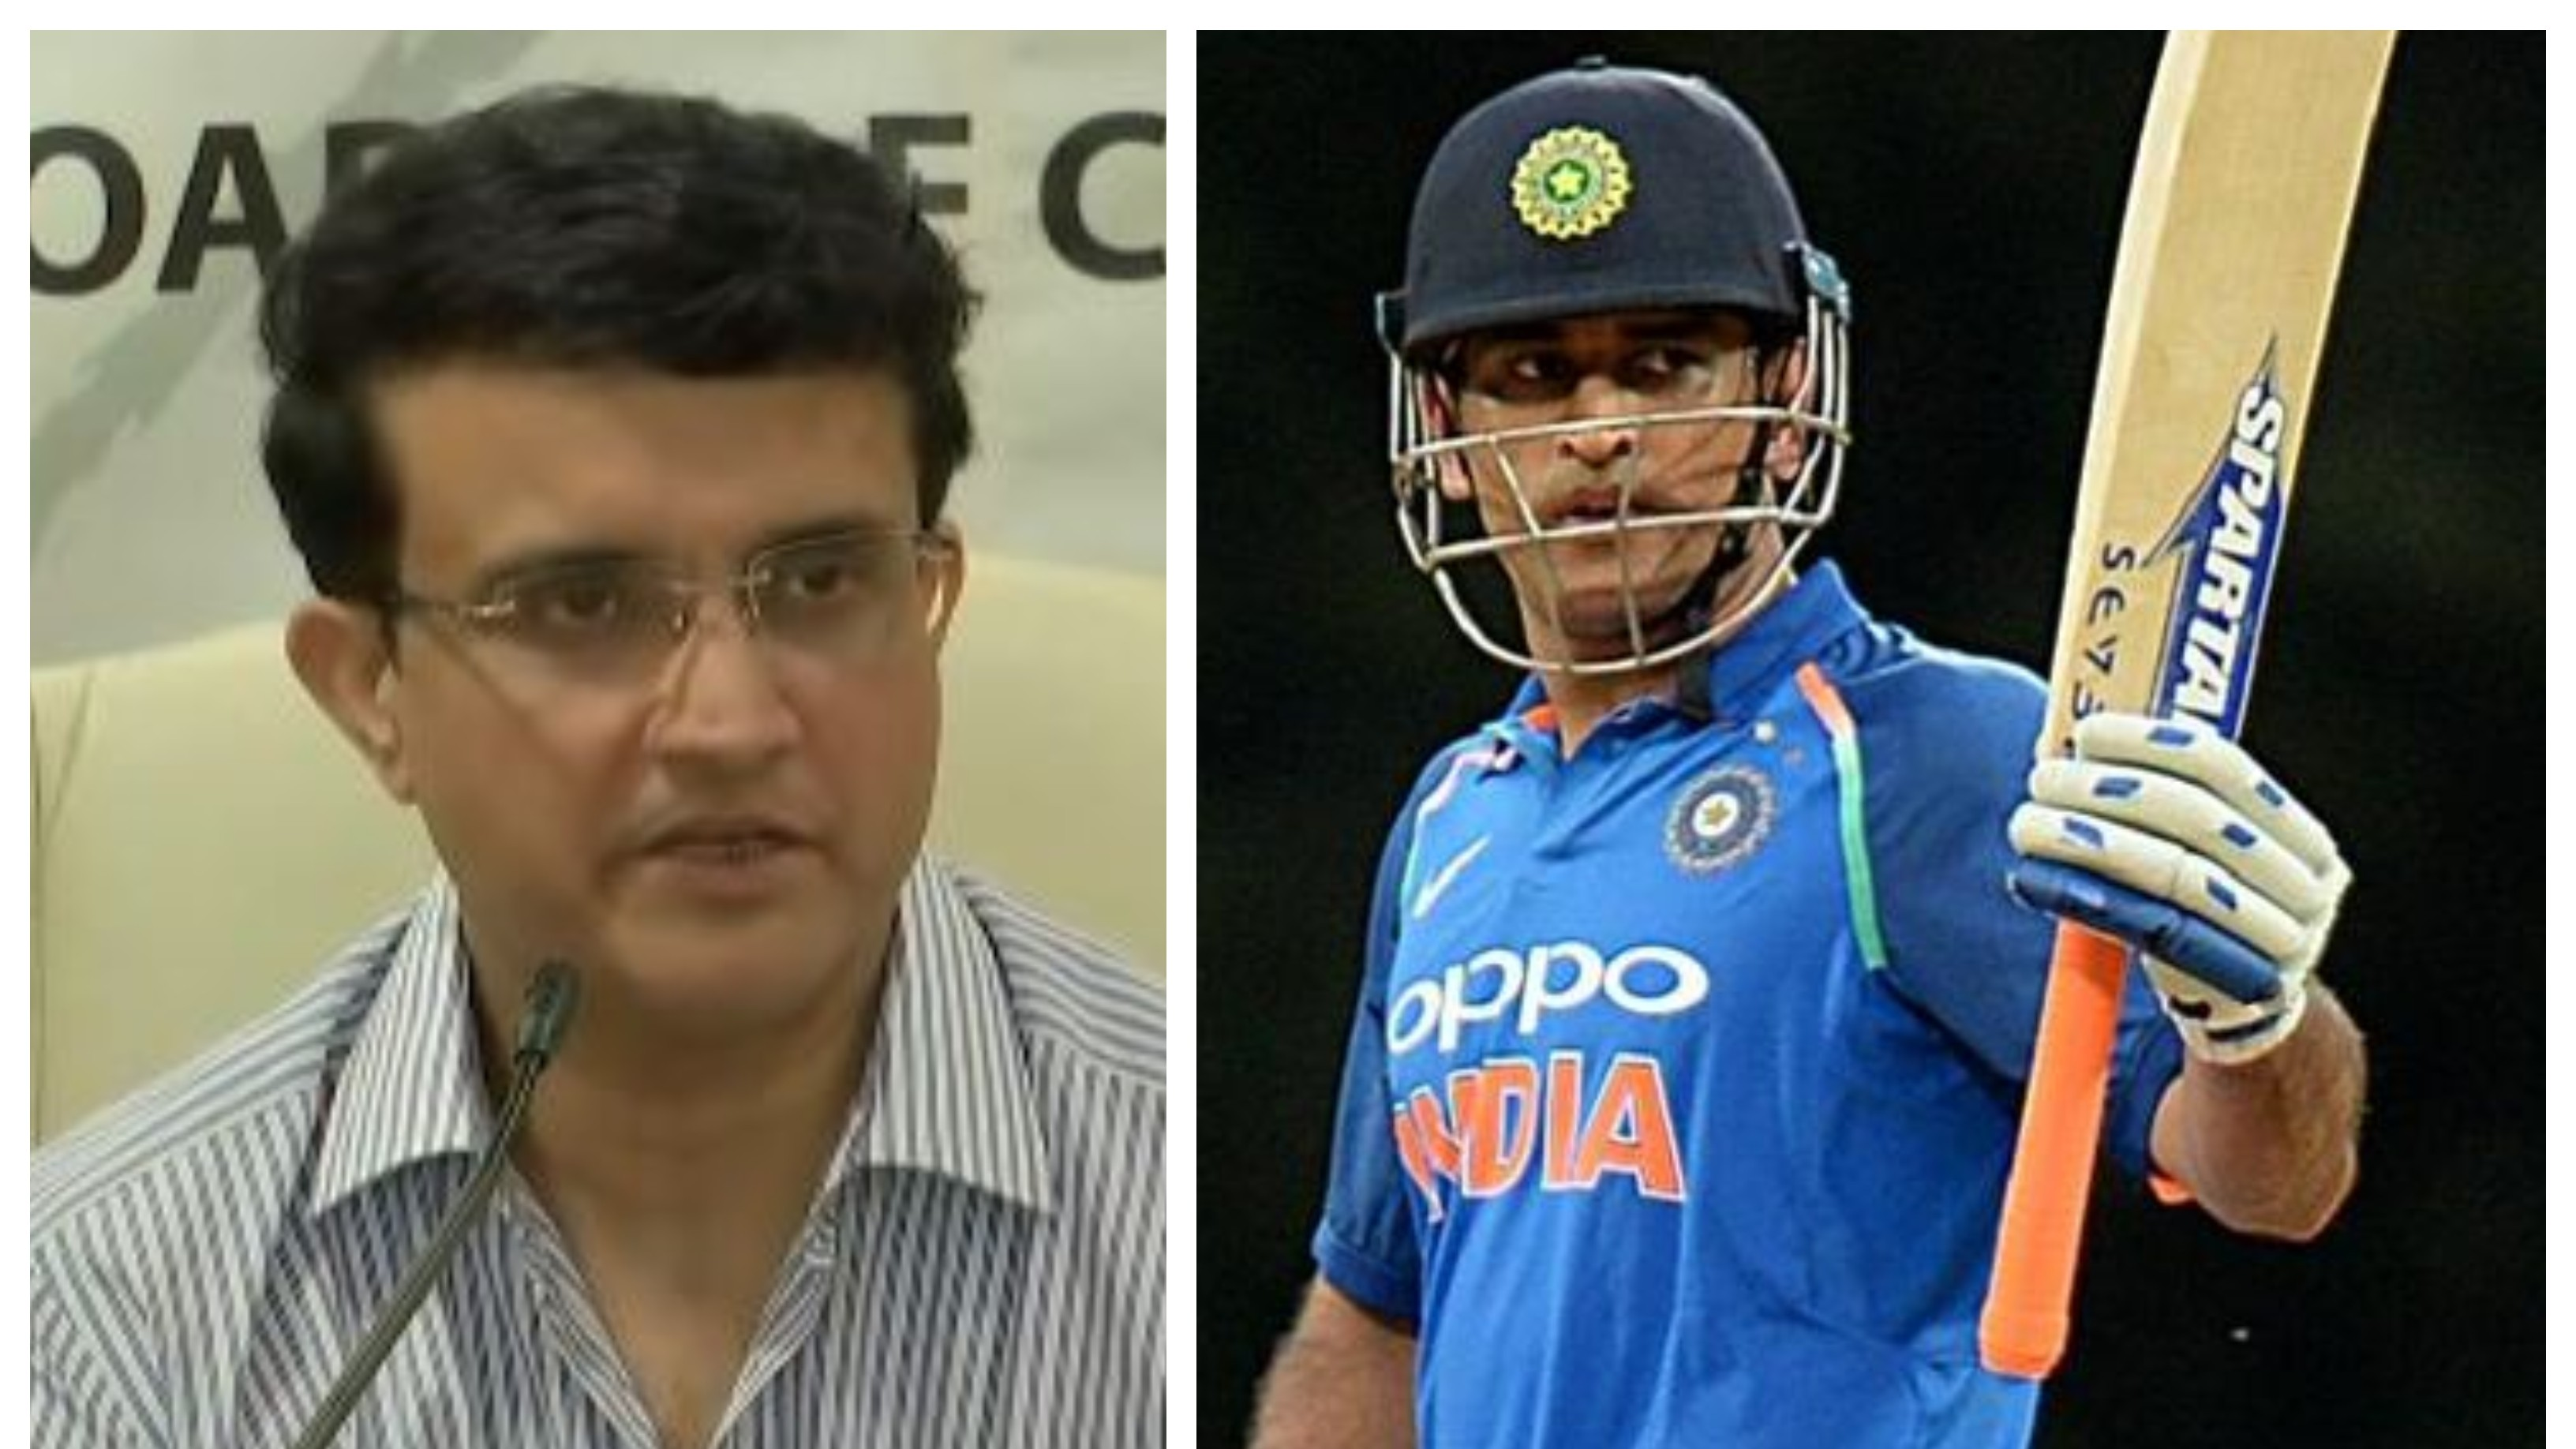 Can't thank MS Dhoni enough for his service to Indian cricket: BCCI chief Sourav Ganguly